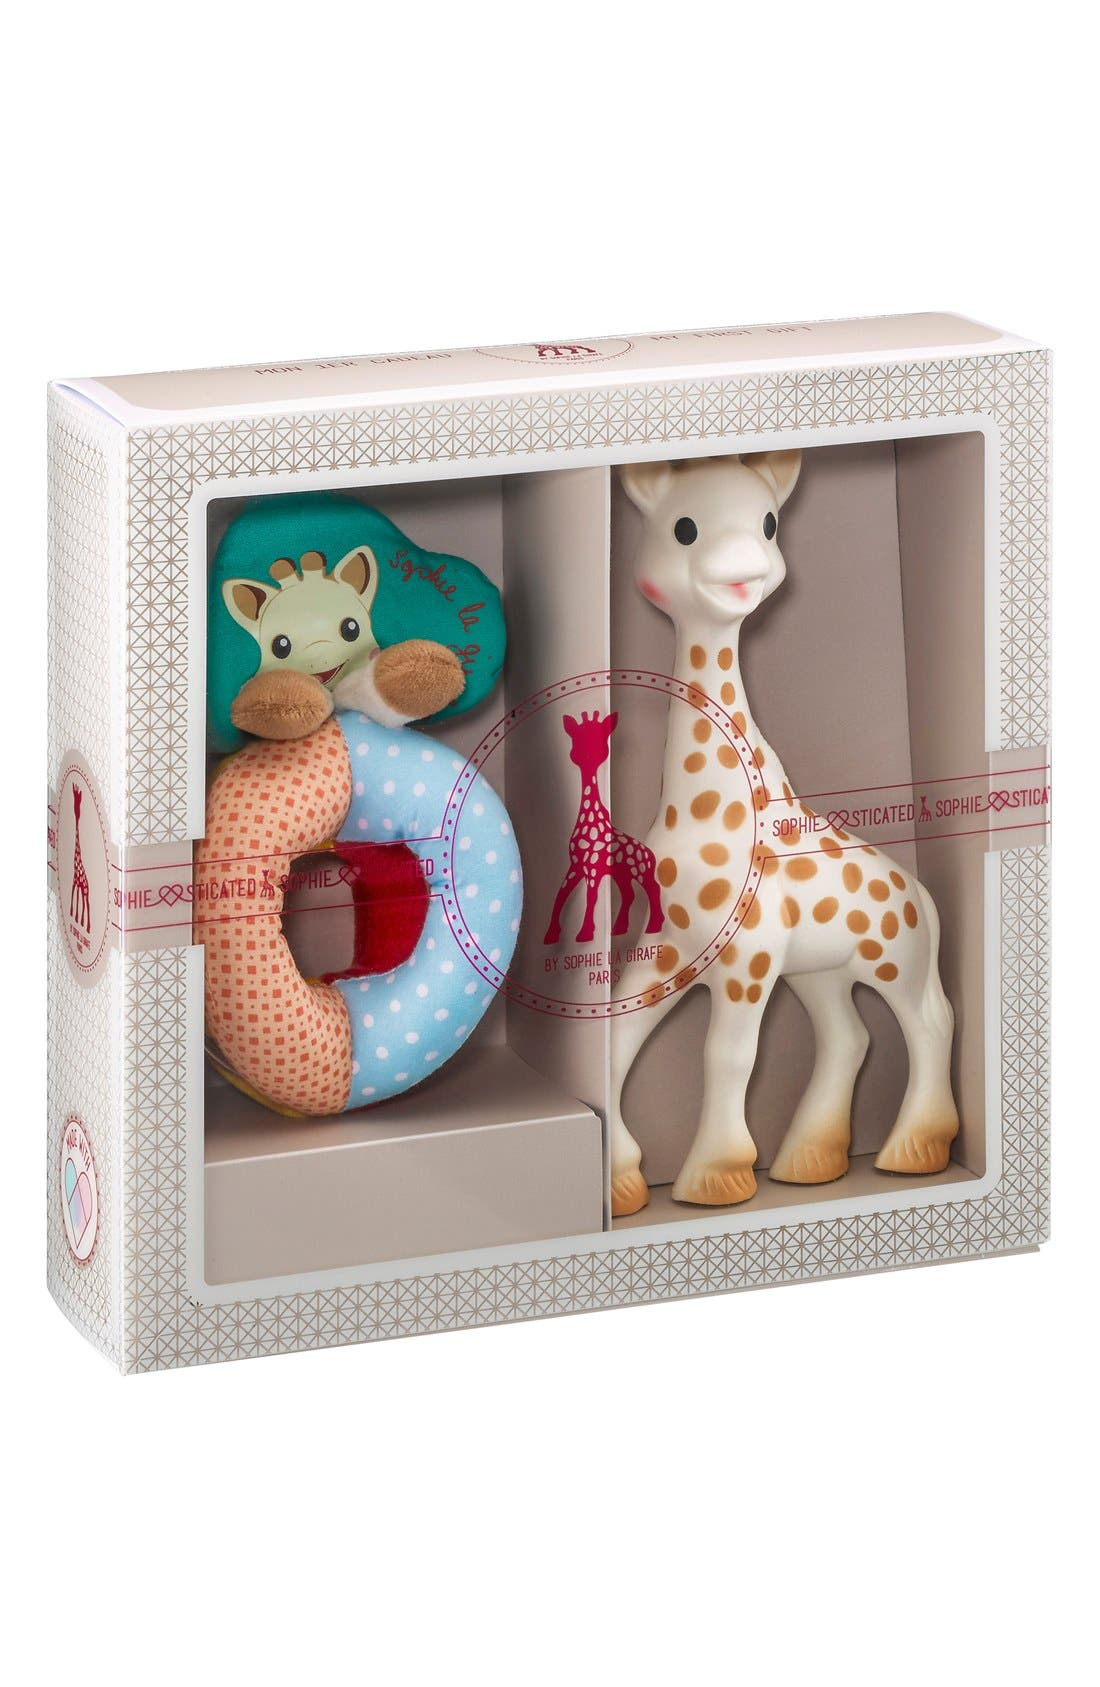 Sophie la Girafe 'Sophiesticated' Rattle & Teething Toy